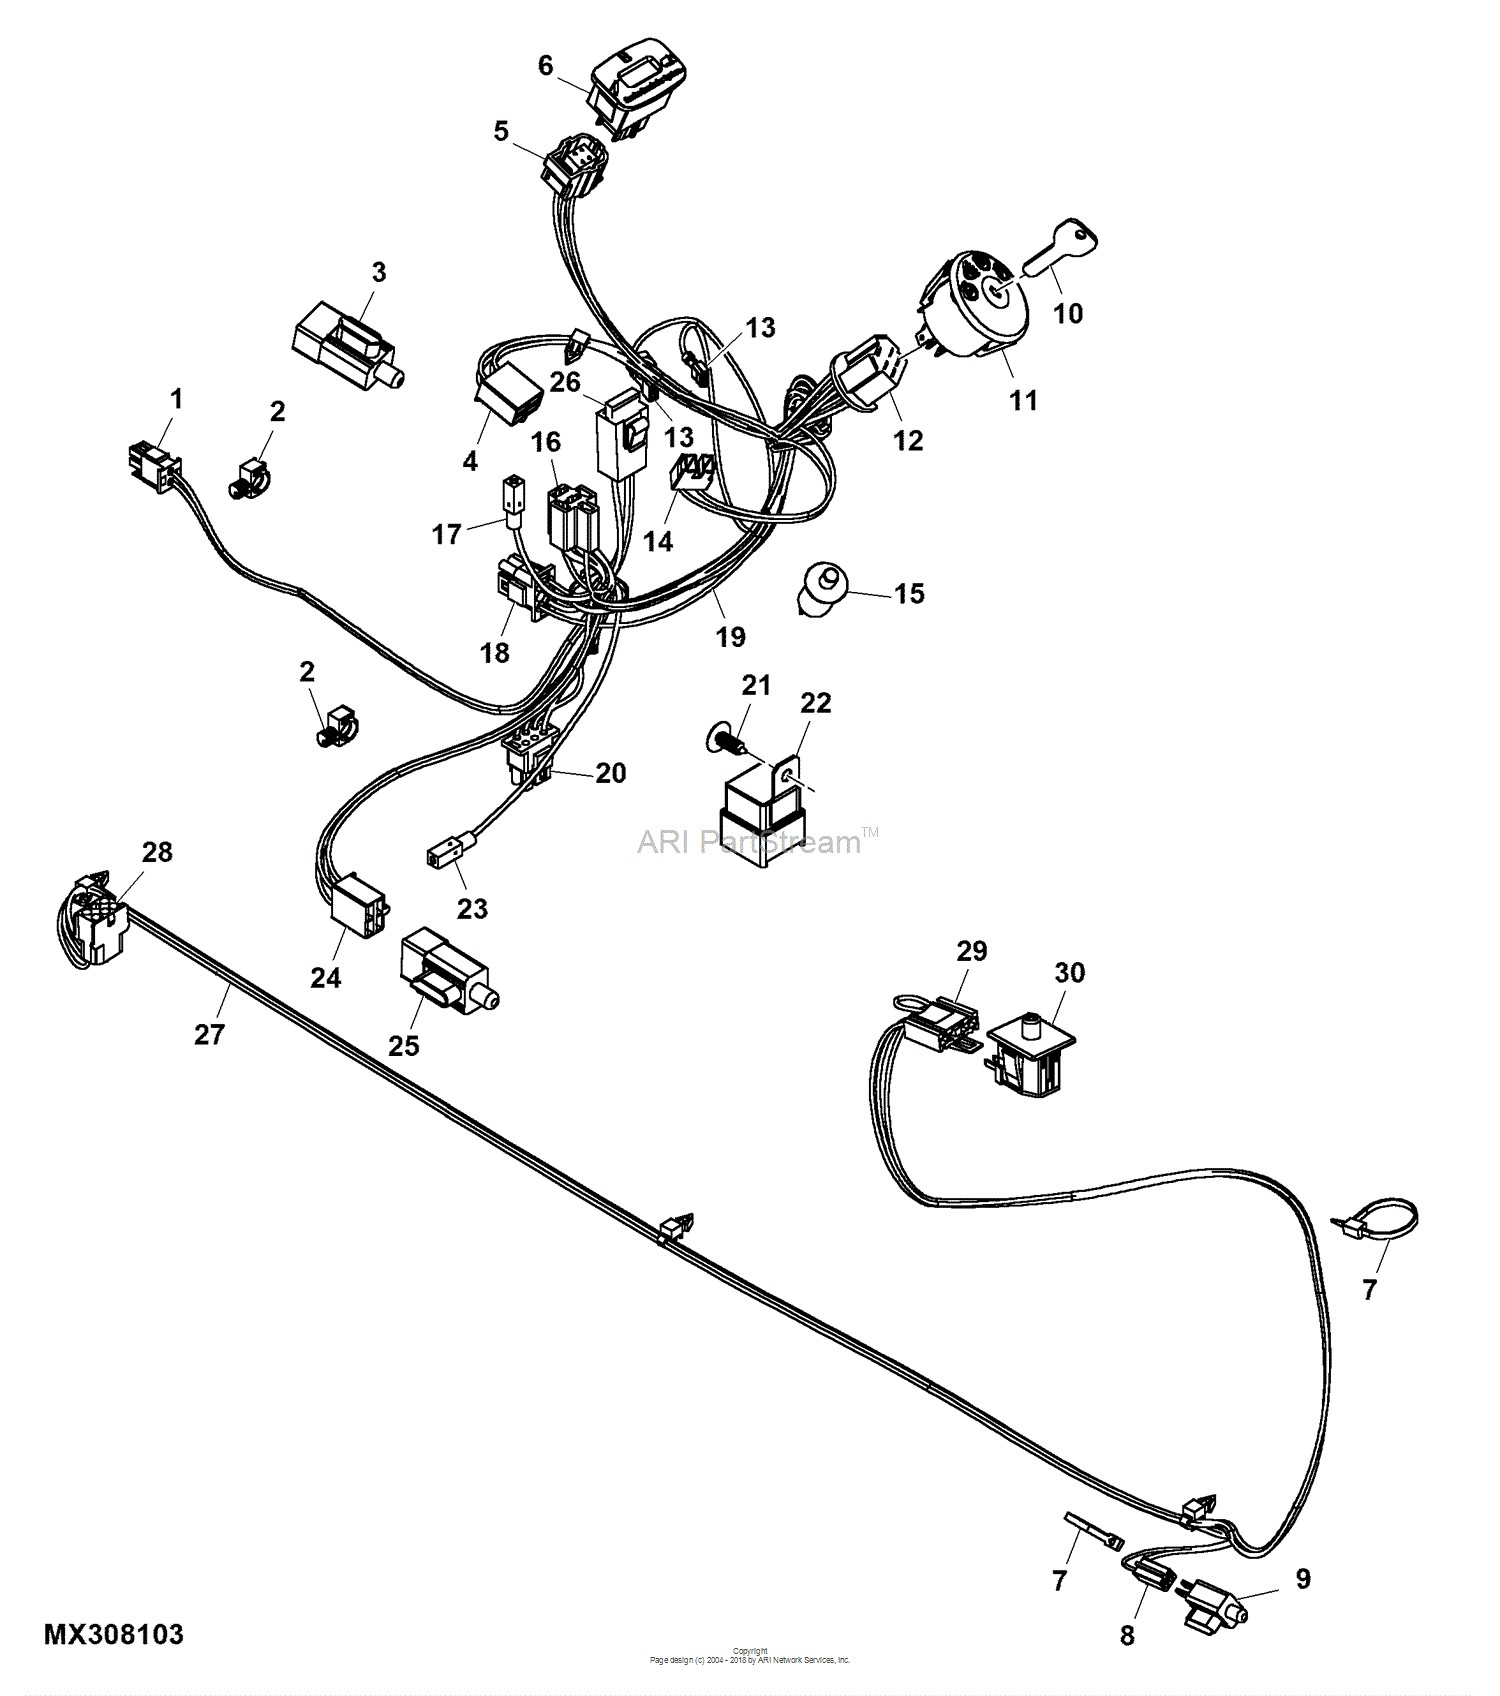 john deere la125 engine diagram john deere stx38 carb